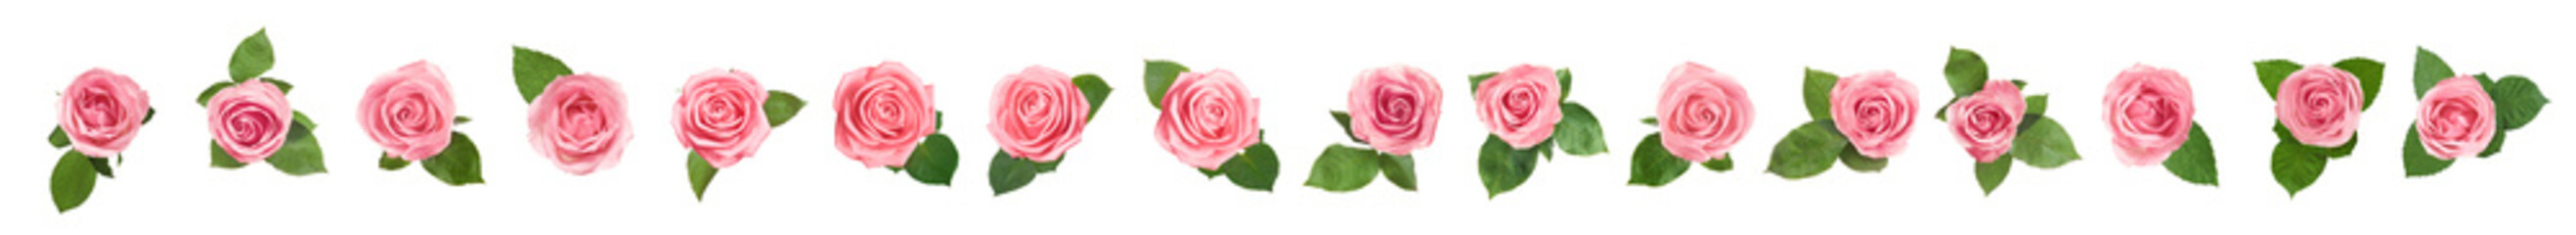 Printed roller blinds Roses Set of beautiful tender pink roses with leaves on white background, top view. Banner design